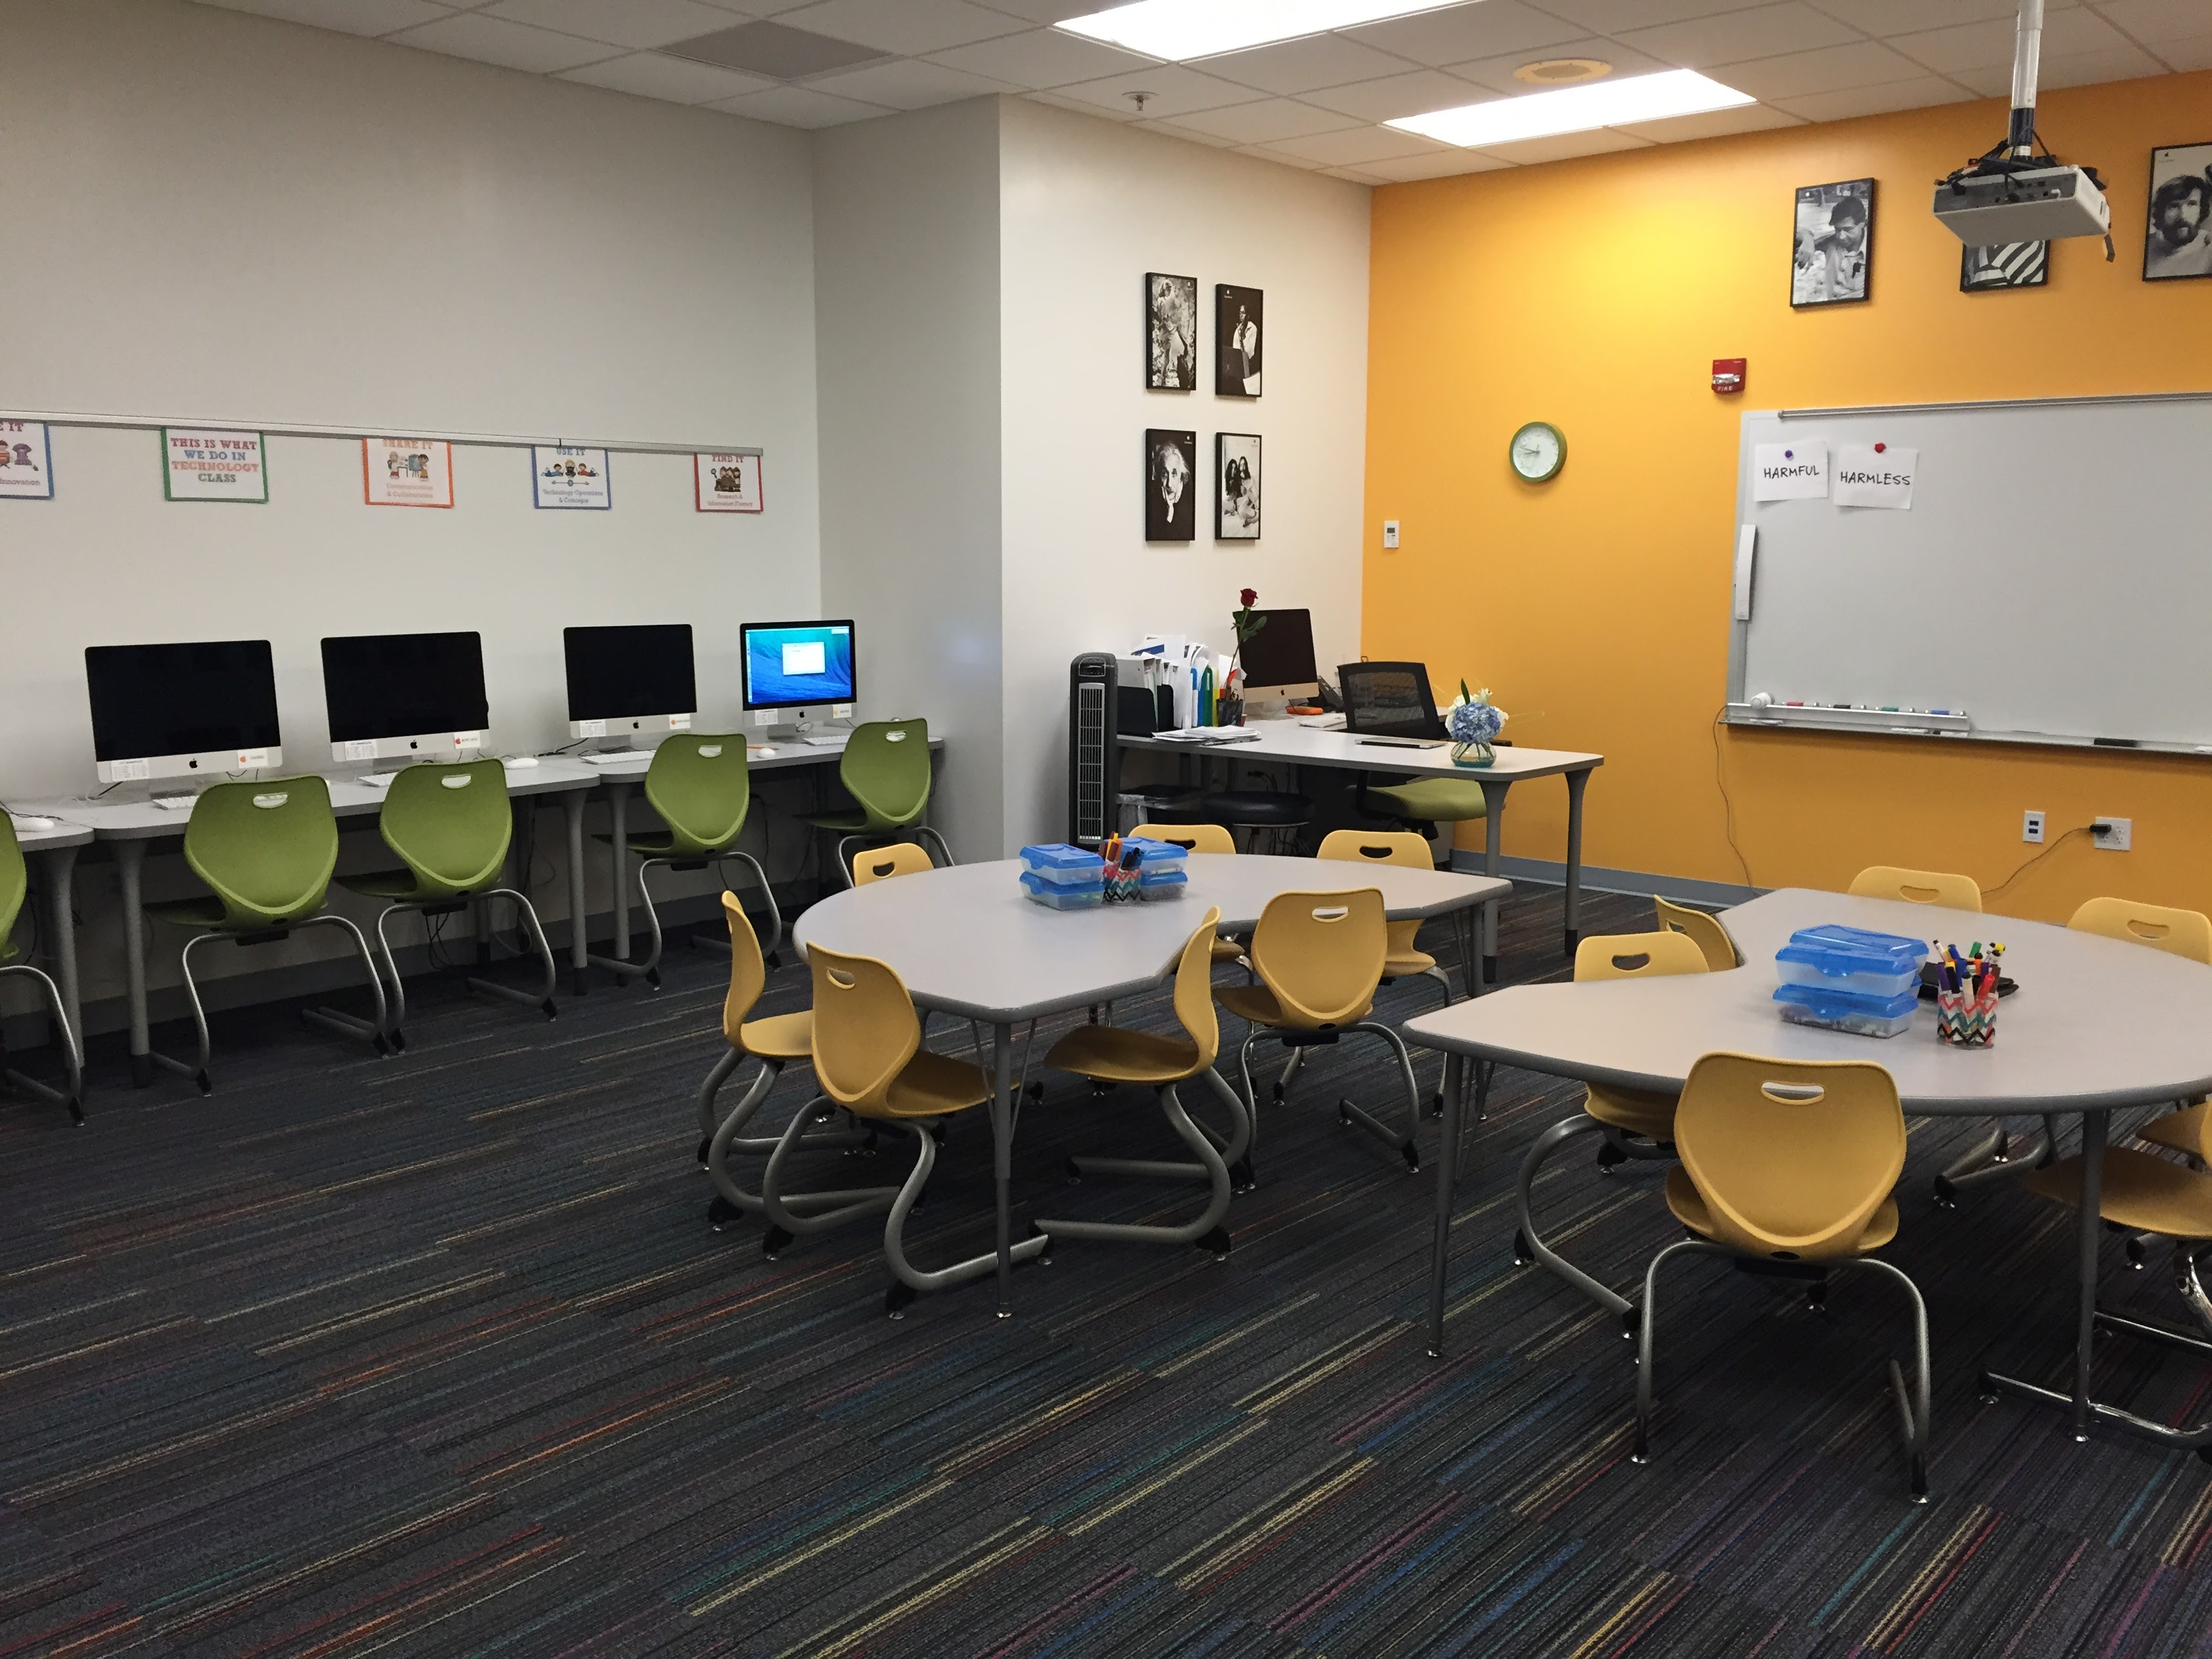 Less Visual Clutter Creates A Space Where Students Can Focus. Photo  Courtesy Of Robert Dillon.